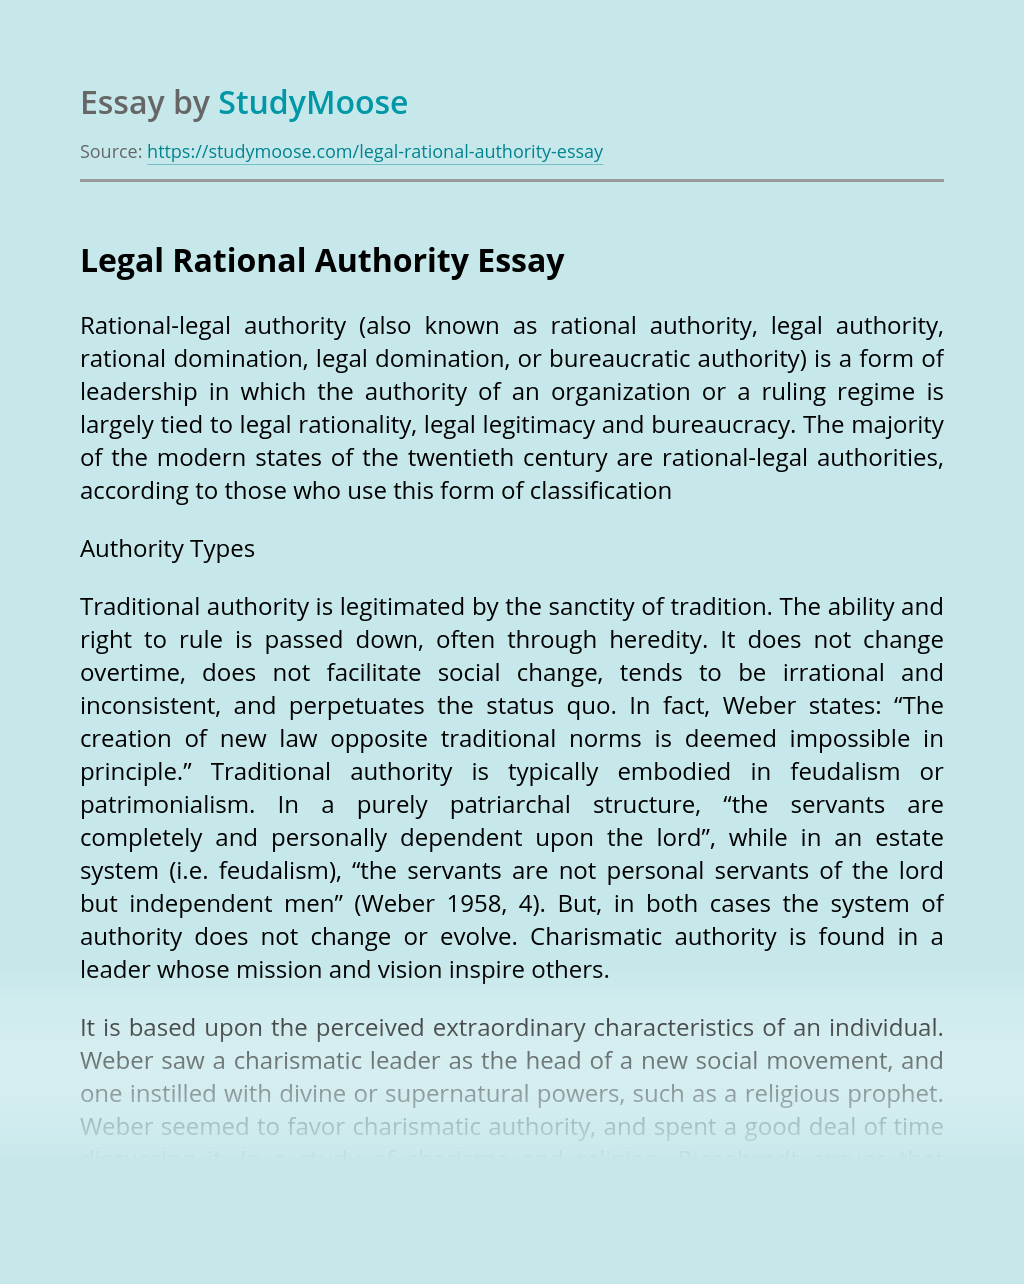 Legal Rational Authority